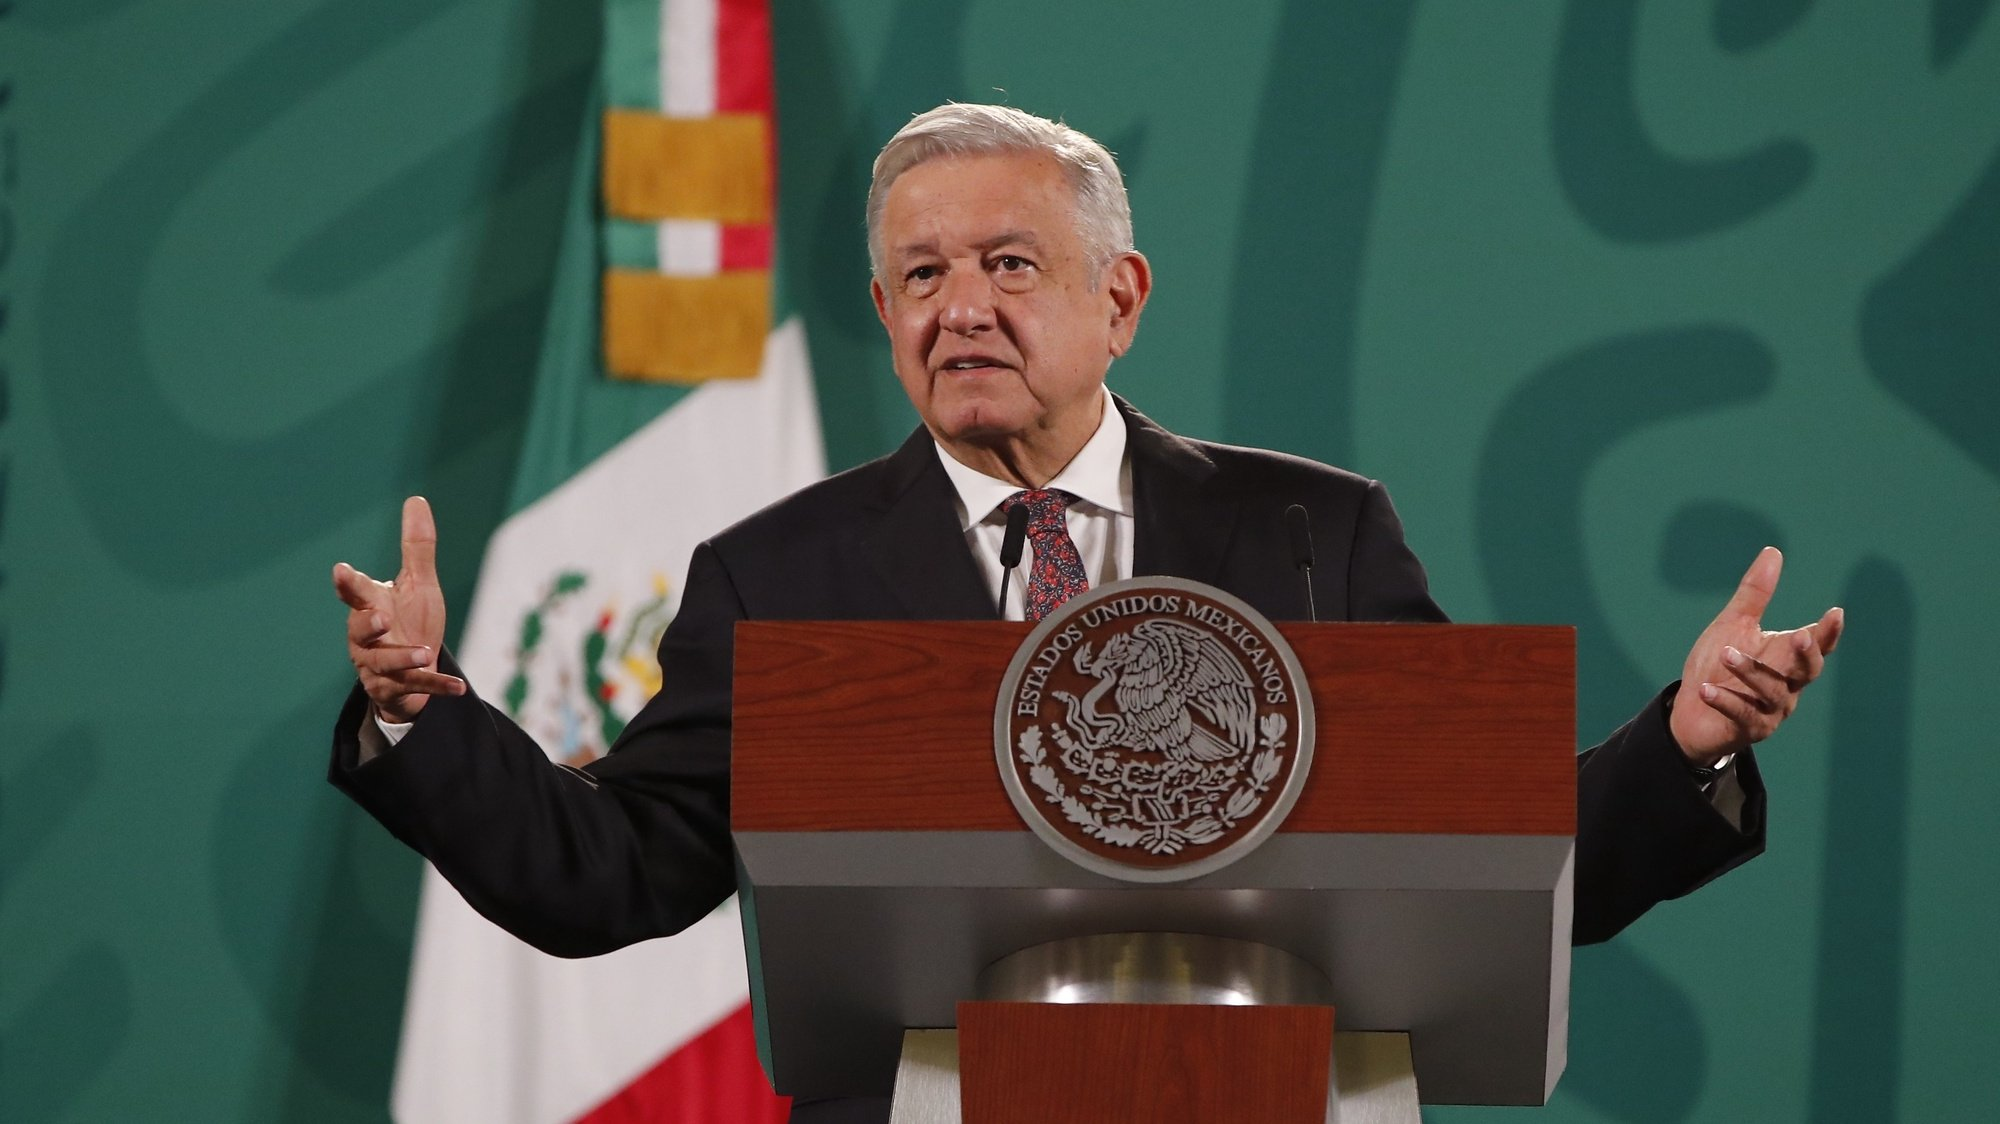 epa09342402 President of Mexico Andres Manuel Lopez Obrador speaks during a morning press conference, at the National Palace, in Mexico City, Mexico, 13 July 2021. Lopez Obrador reiterated that the Cuban economic bloc must be ended, and in the face of protests in recent days, he said he had no 'information' on possible interventionism by the United States.  EPA/JOSE MENDEZ